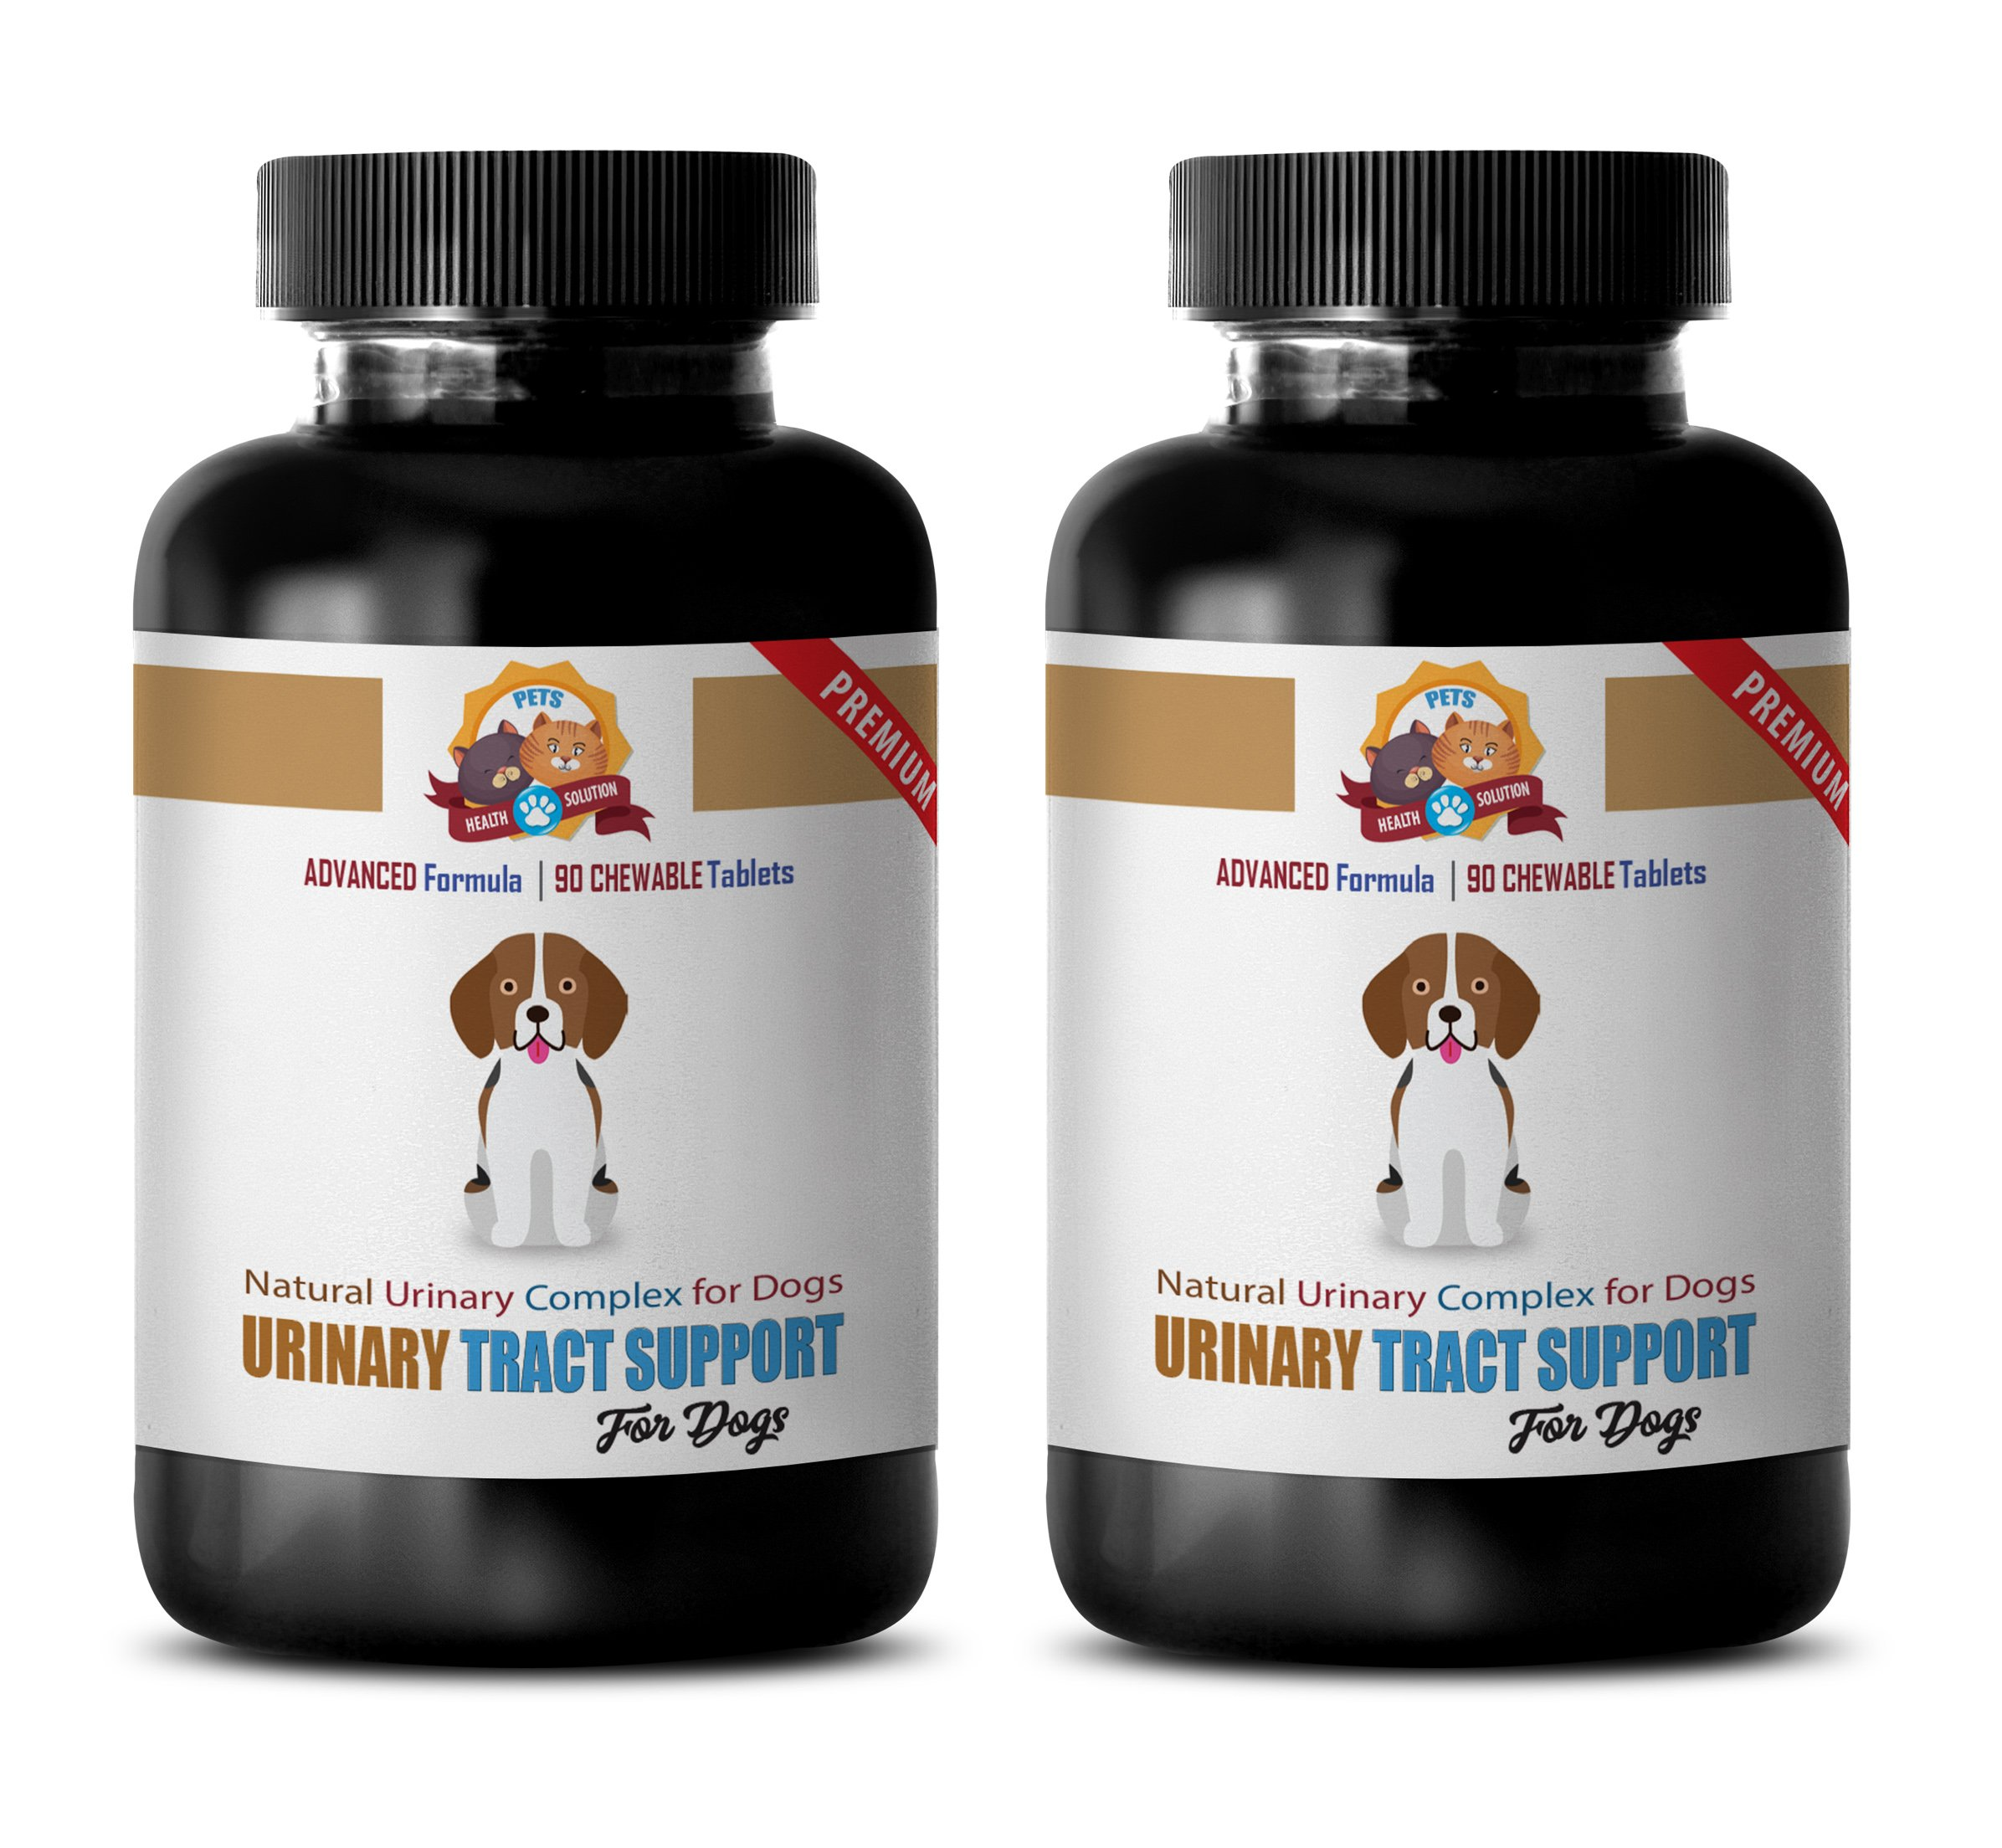 Dog Urinary Health Support - Natural Urinary Tract Support - Dog Treats - Premium Advanced Complex - Cranberry Dog Pills - 180 Treats (2 Bottle) by PETS HEALTH SOLUTION